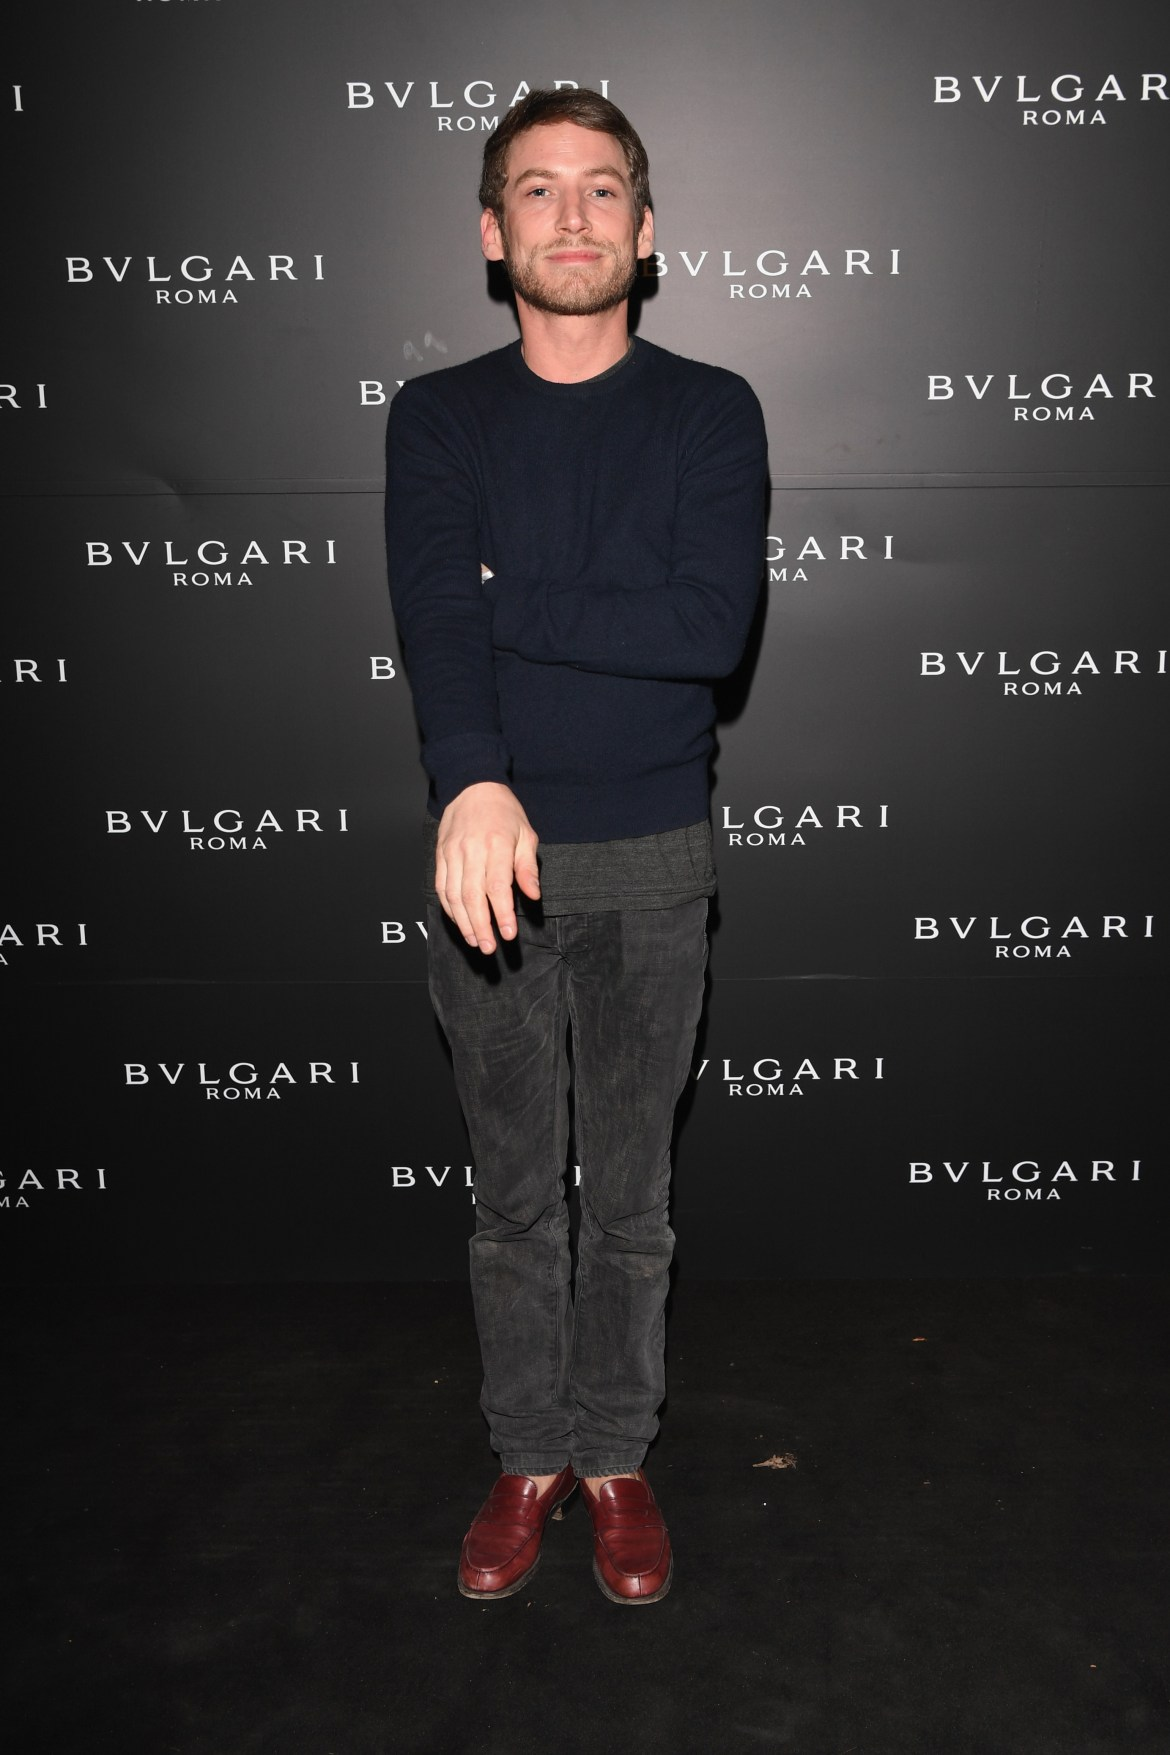 MILAN, ITALY - APRIL 12:  Ito Morabito attends BVLGARI Celebration of B.Zero1 At Milan Design Week at Hotel Bulgari on April 12, 2016 in Milan, Italy.  (Photo by Venturelli/Getty Images for BVLGARI) *** Local Caption *** Ito Morabito